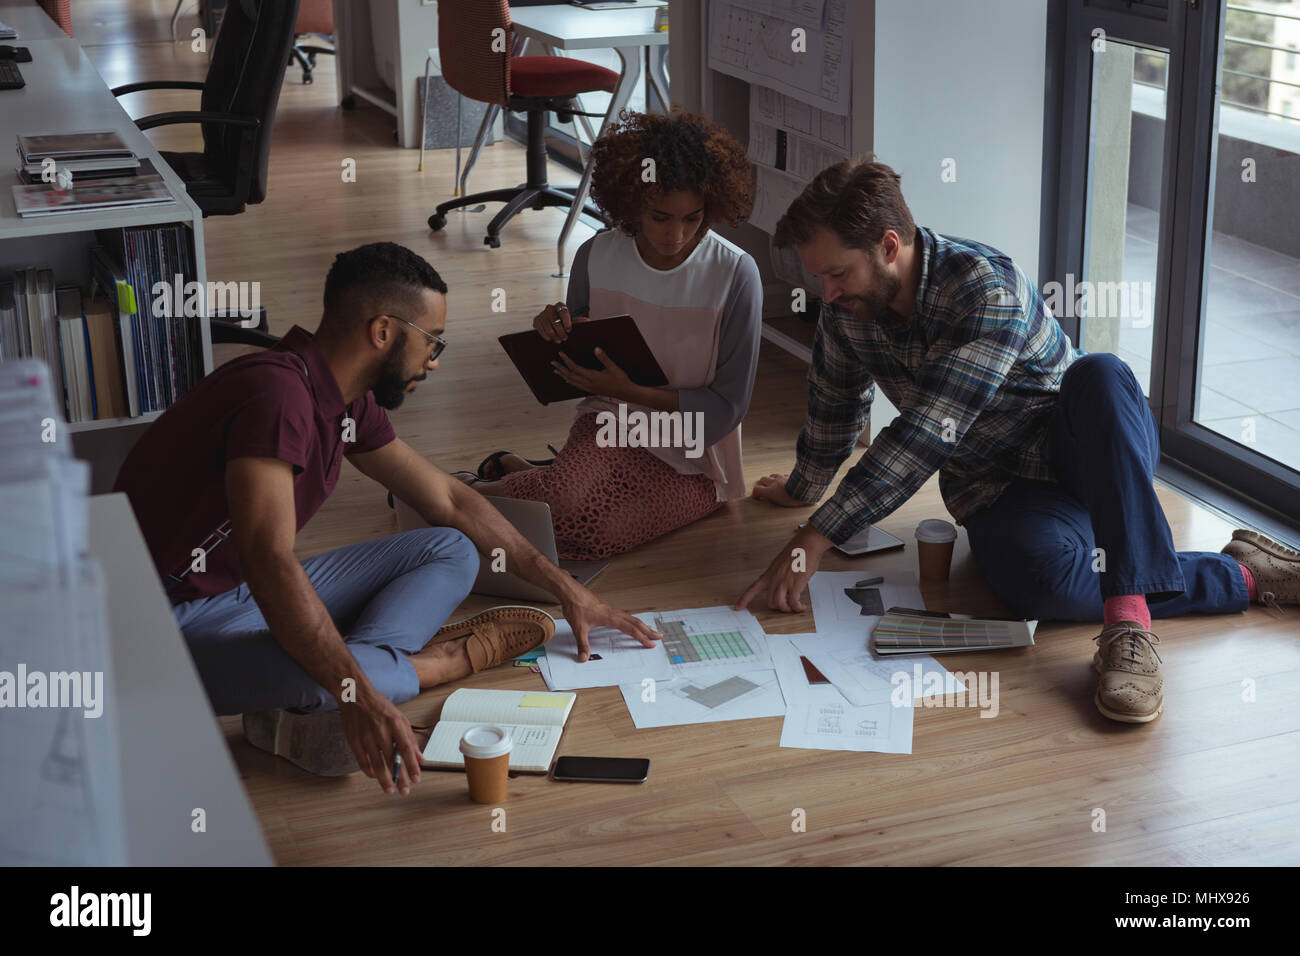 Architects discussing over document on floor - Stock Image